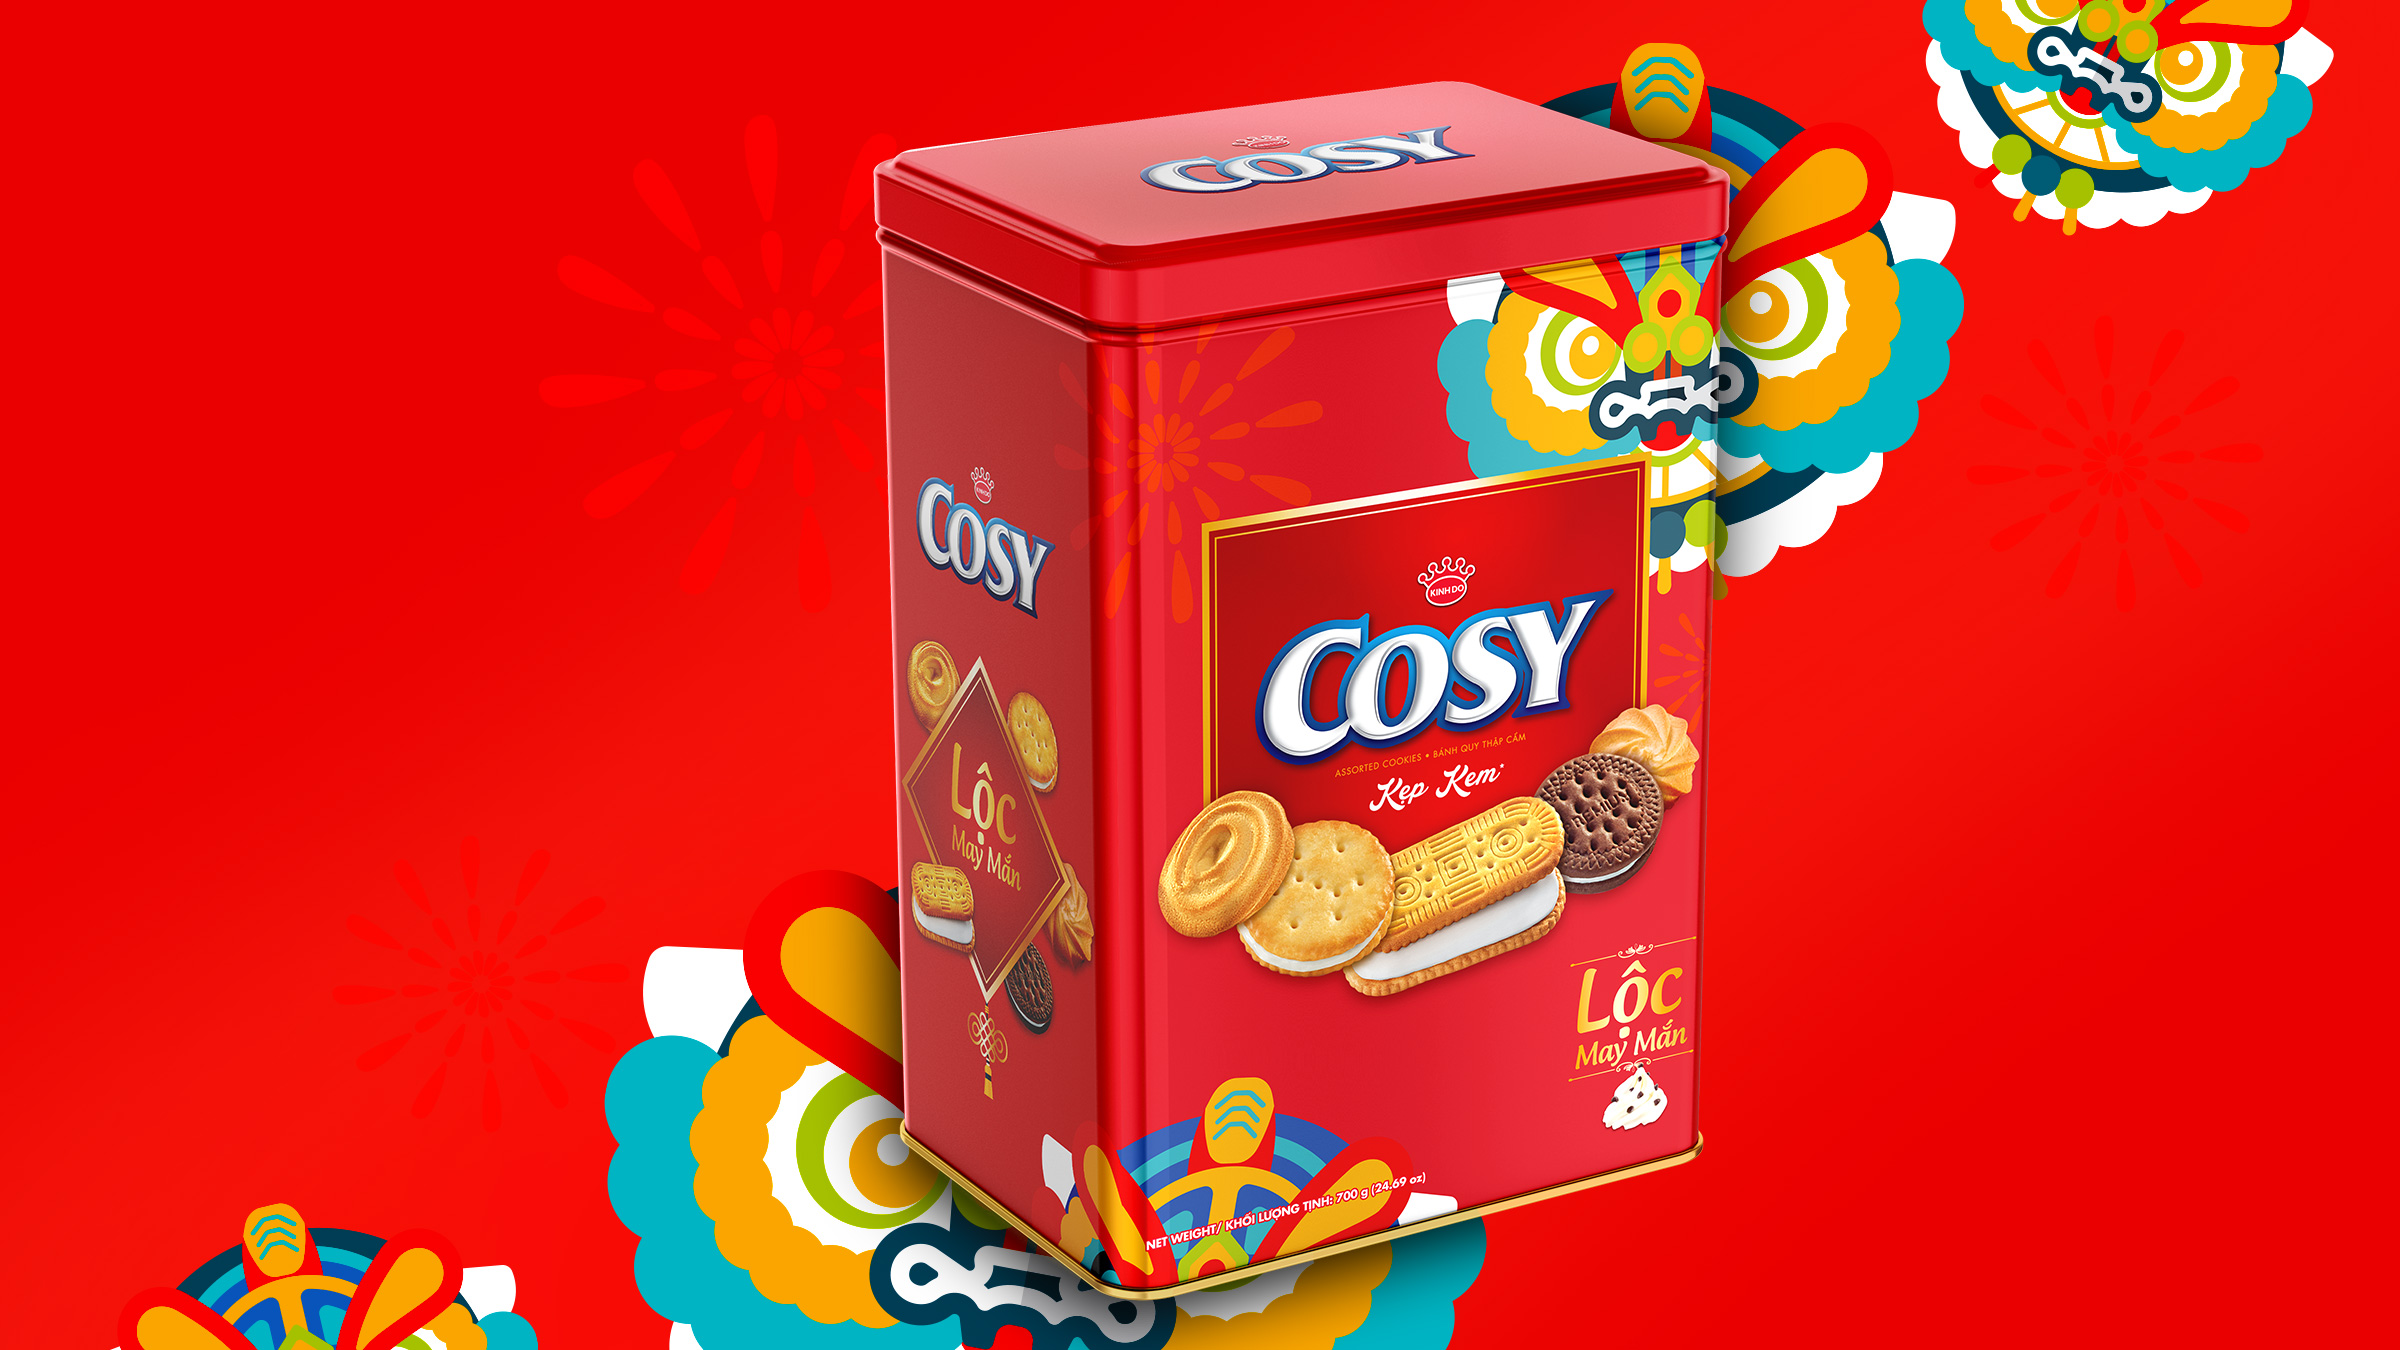 packaging design Cosy Tet